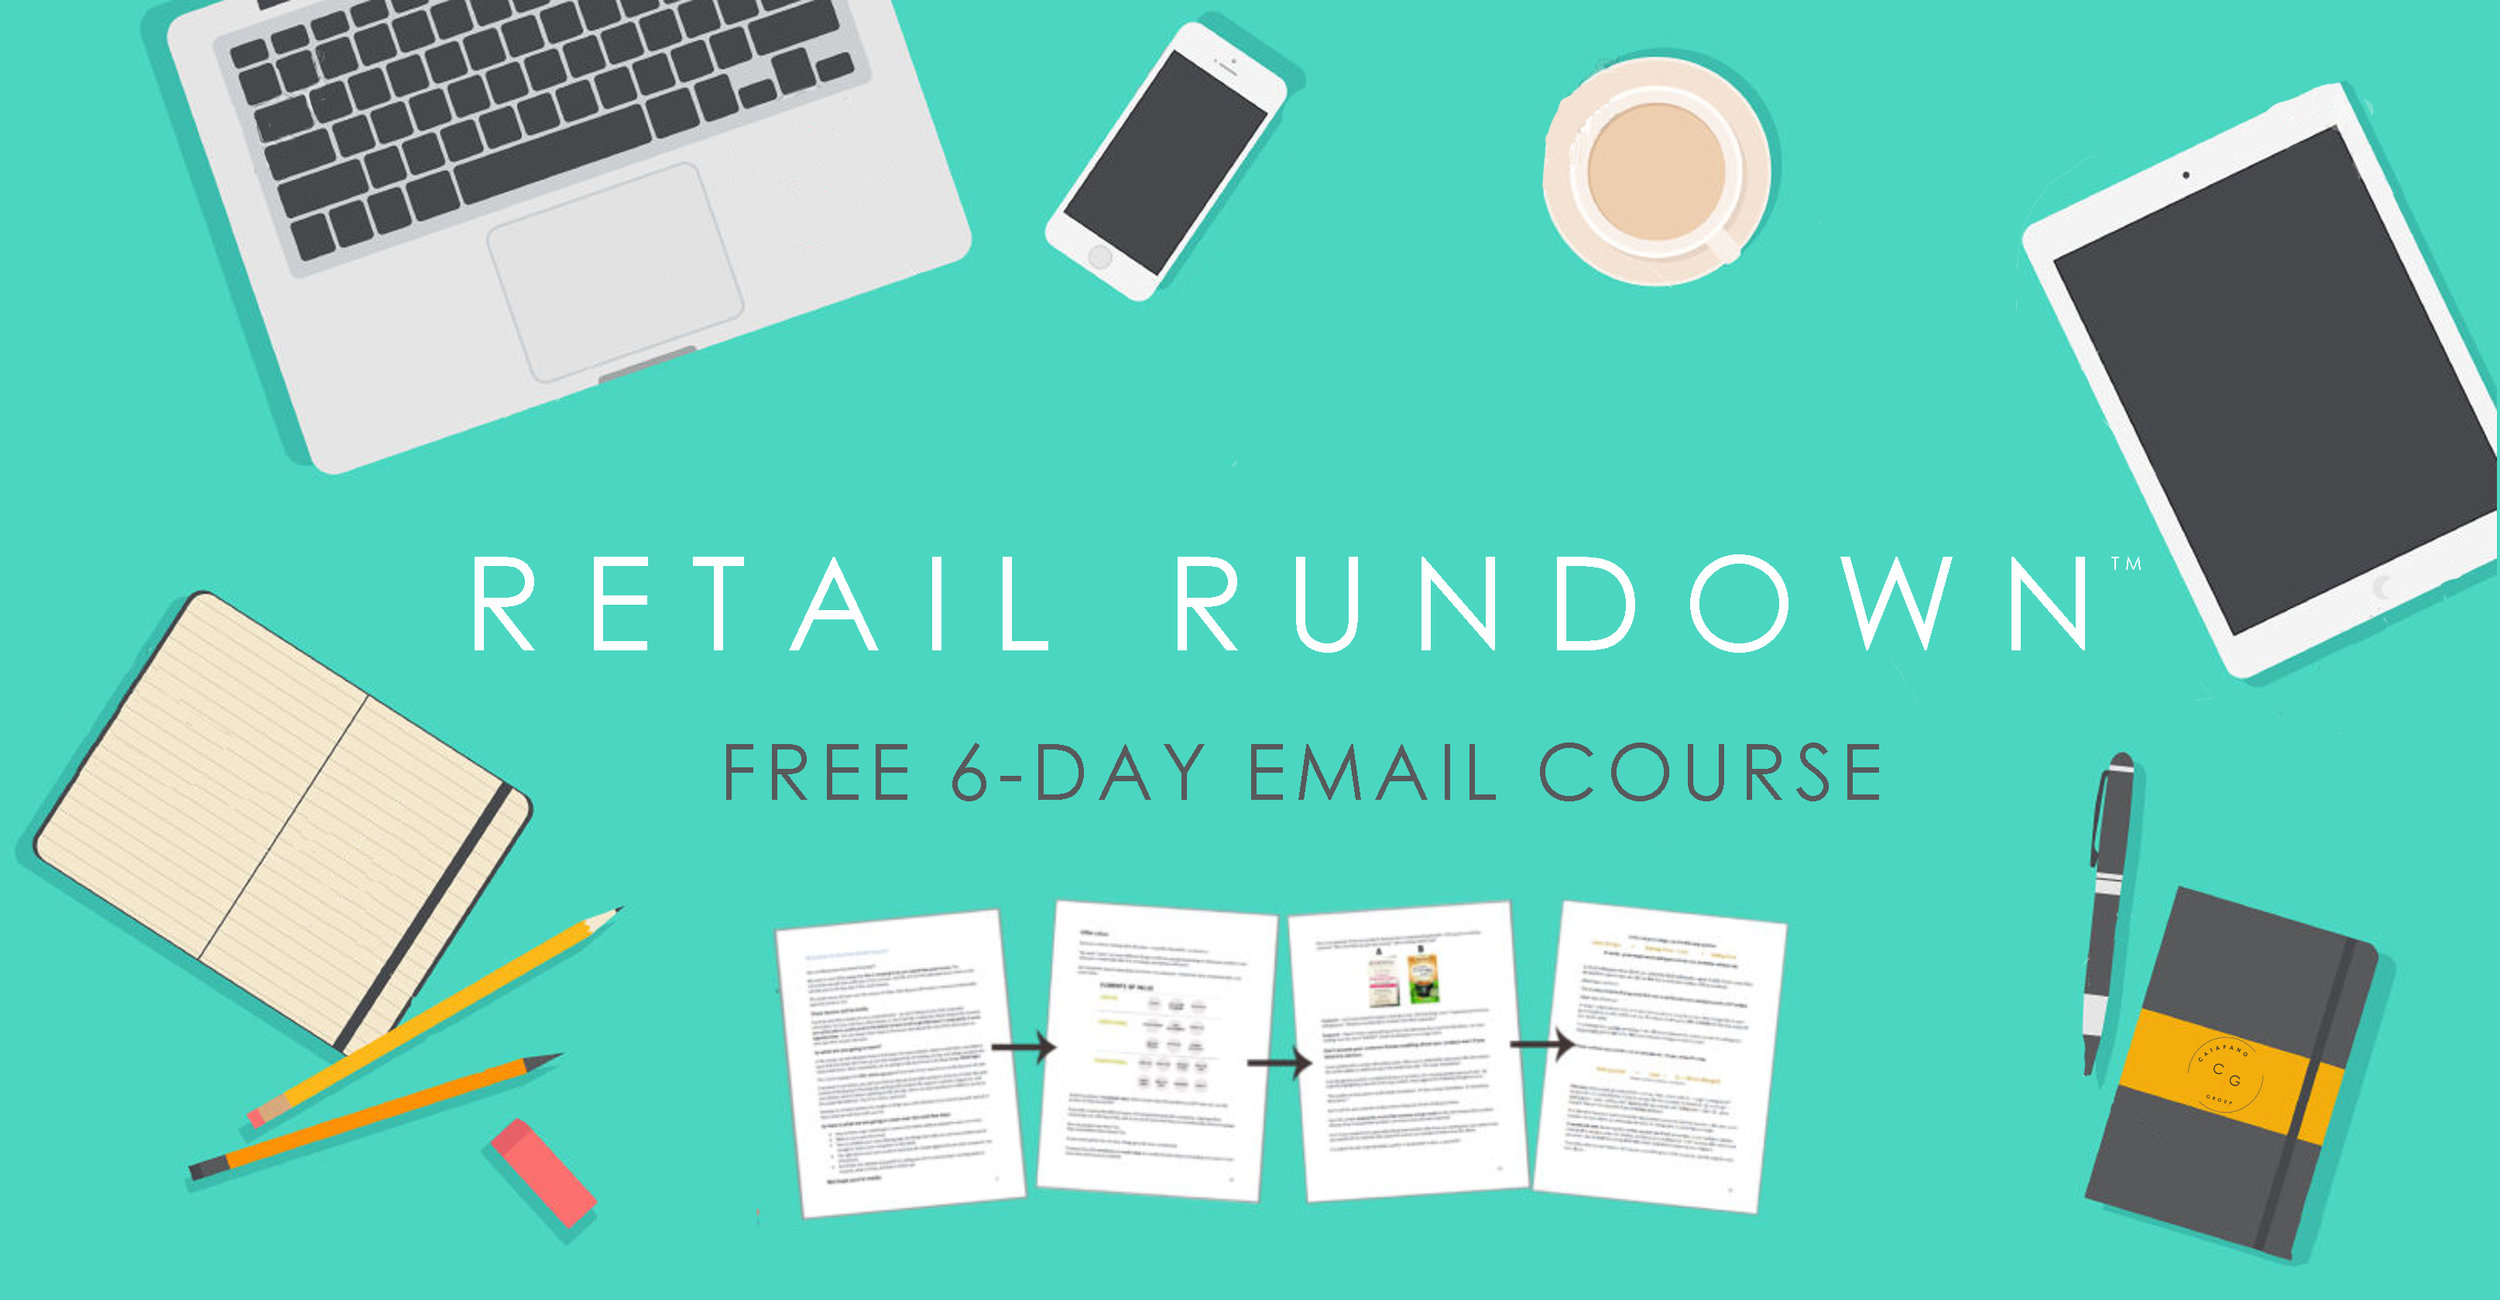 FREE EMAIL COURSE BANNER 1.jpg